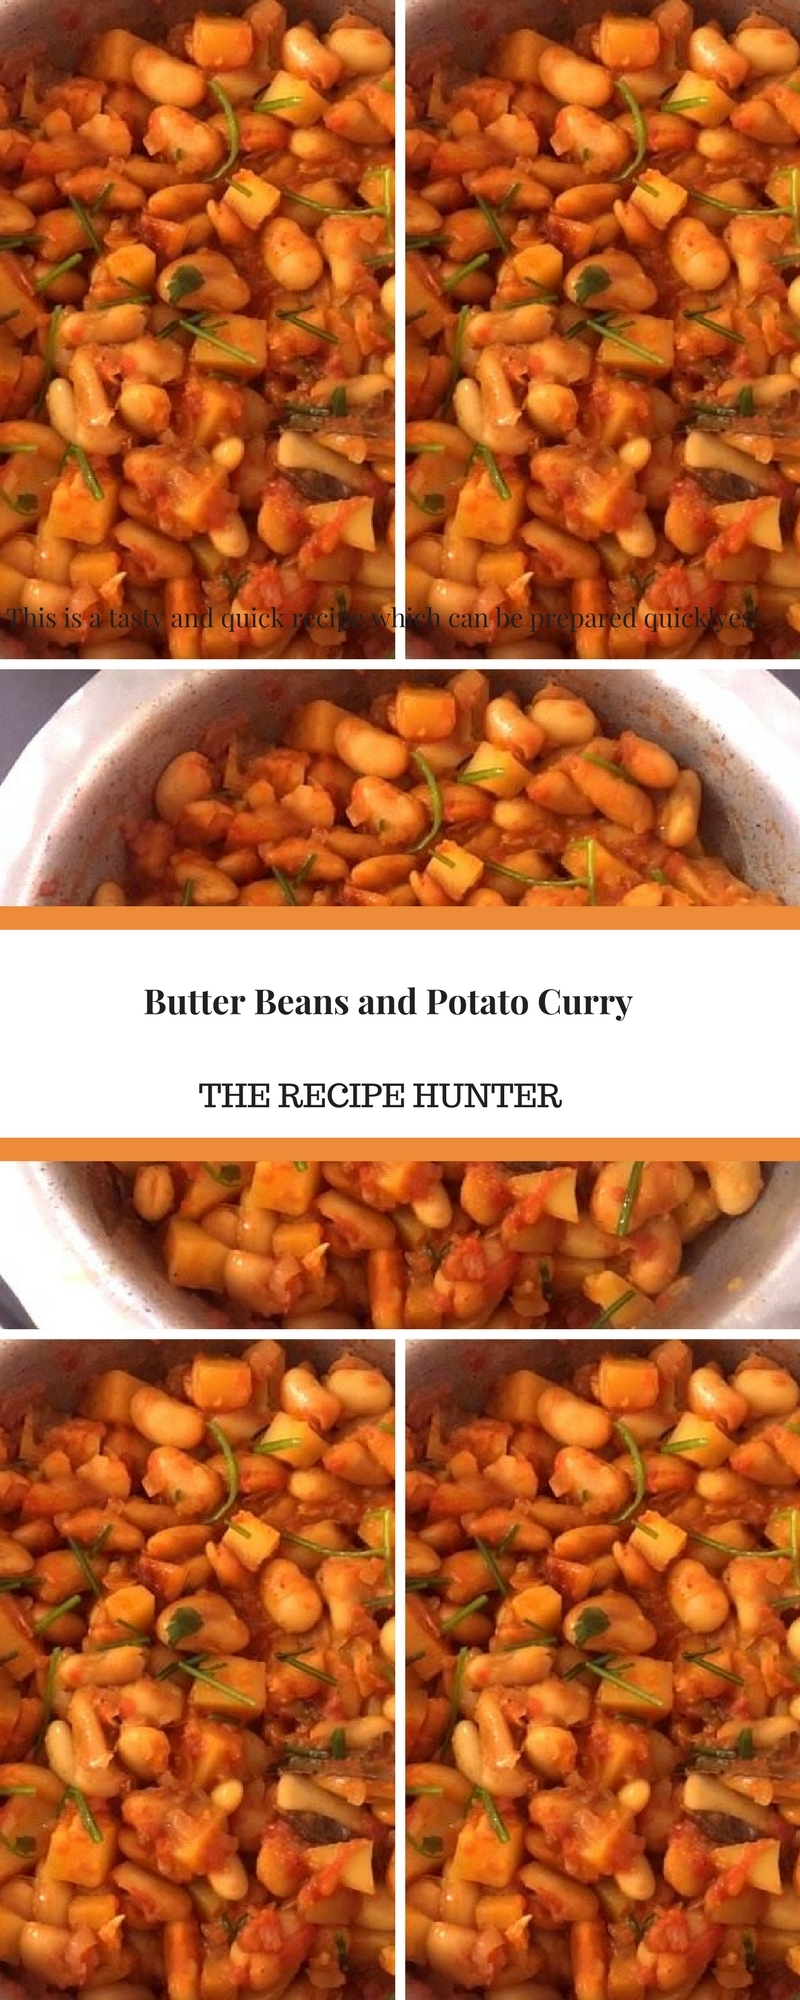 Butter Beans and Potato Curry